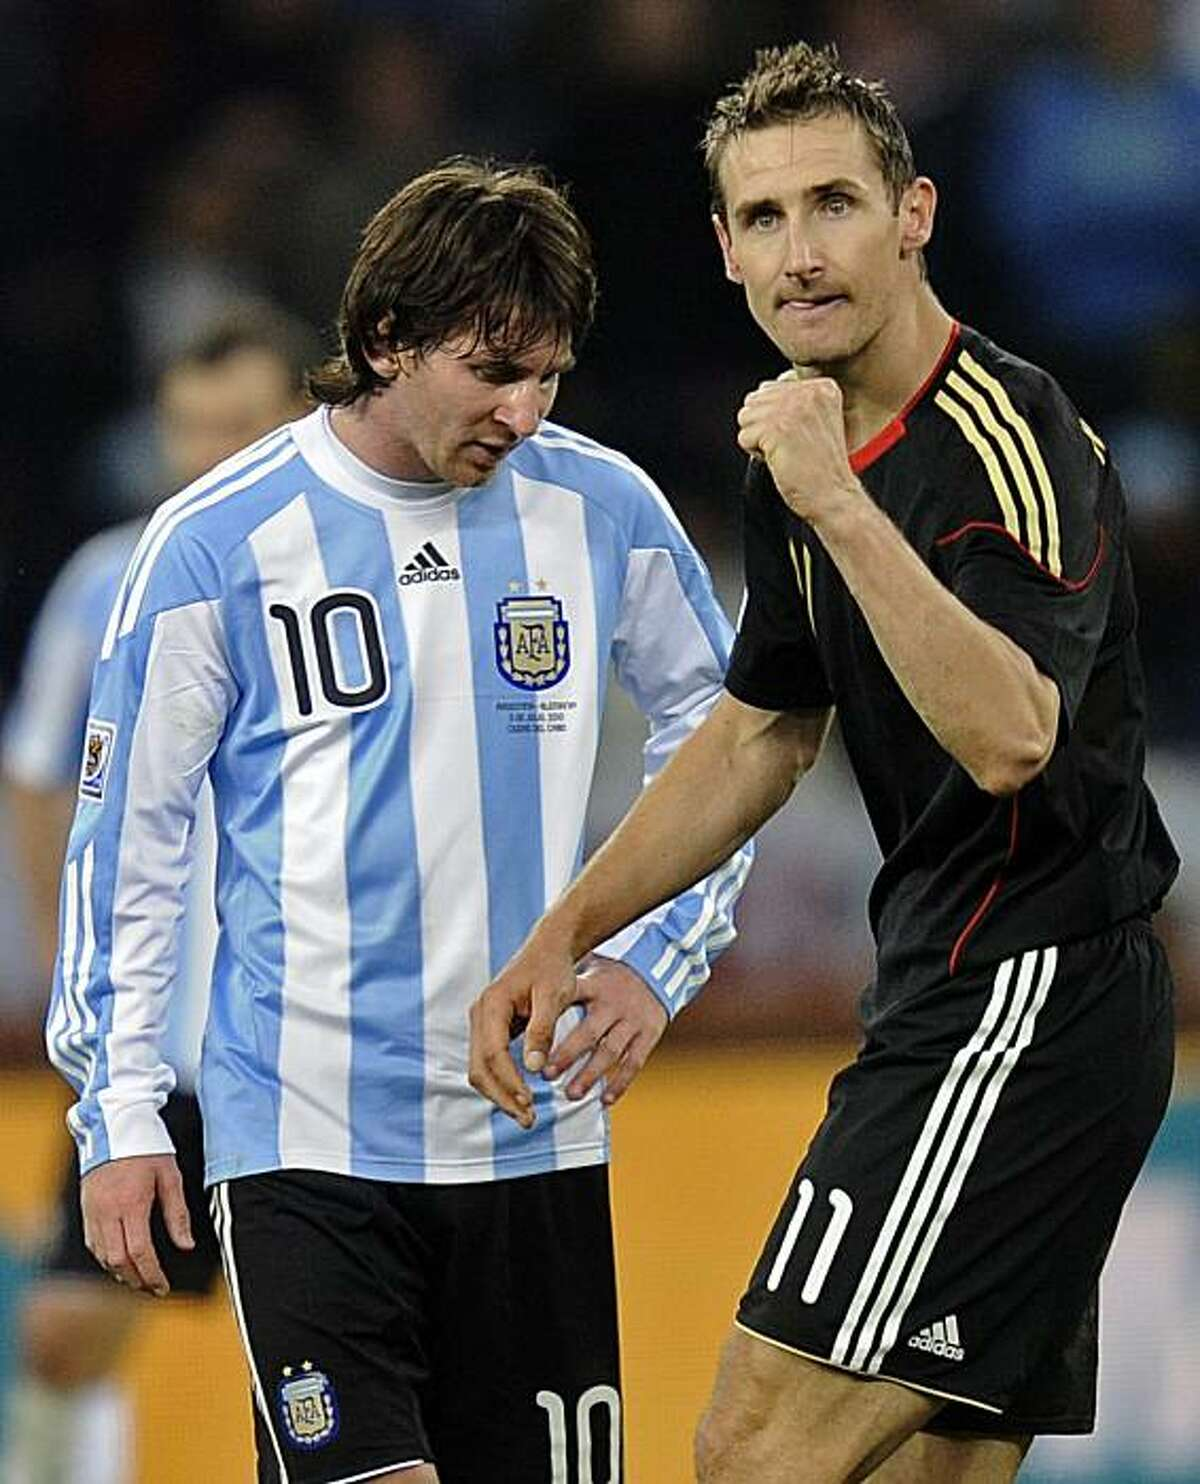 Germany's Miroslav Klose, right, walks past Argentina's Lionel Messi as he celebrates after scoring his team's fourth goal during the World Cup quarterfinal soccer match between Argentina and Germany at the Green Point stadium in Cape Town, South Africa,Saturday, July 3, 2010. Germany won 4-0.